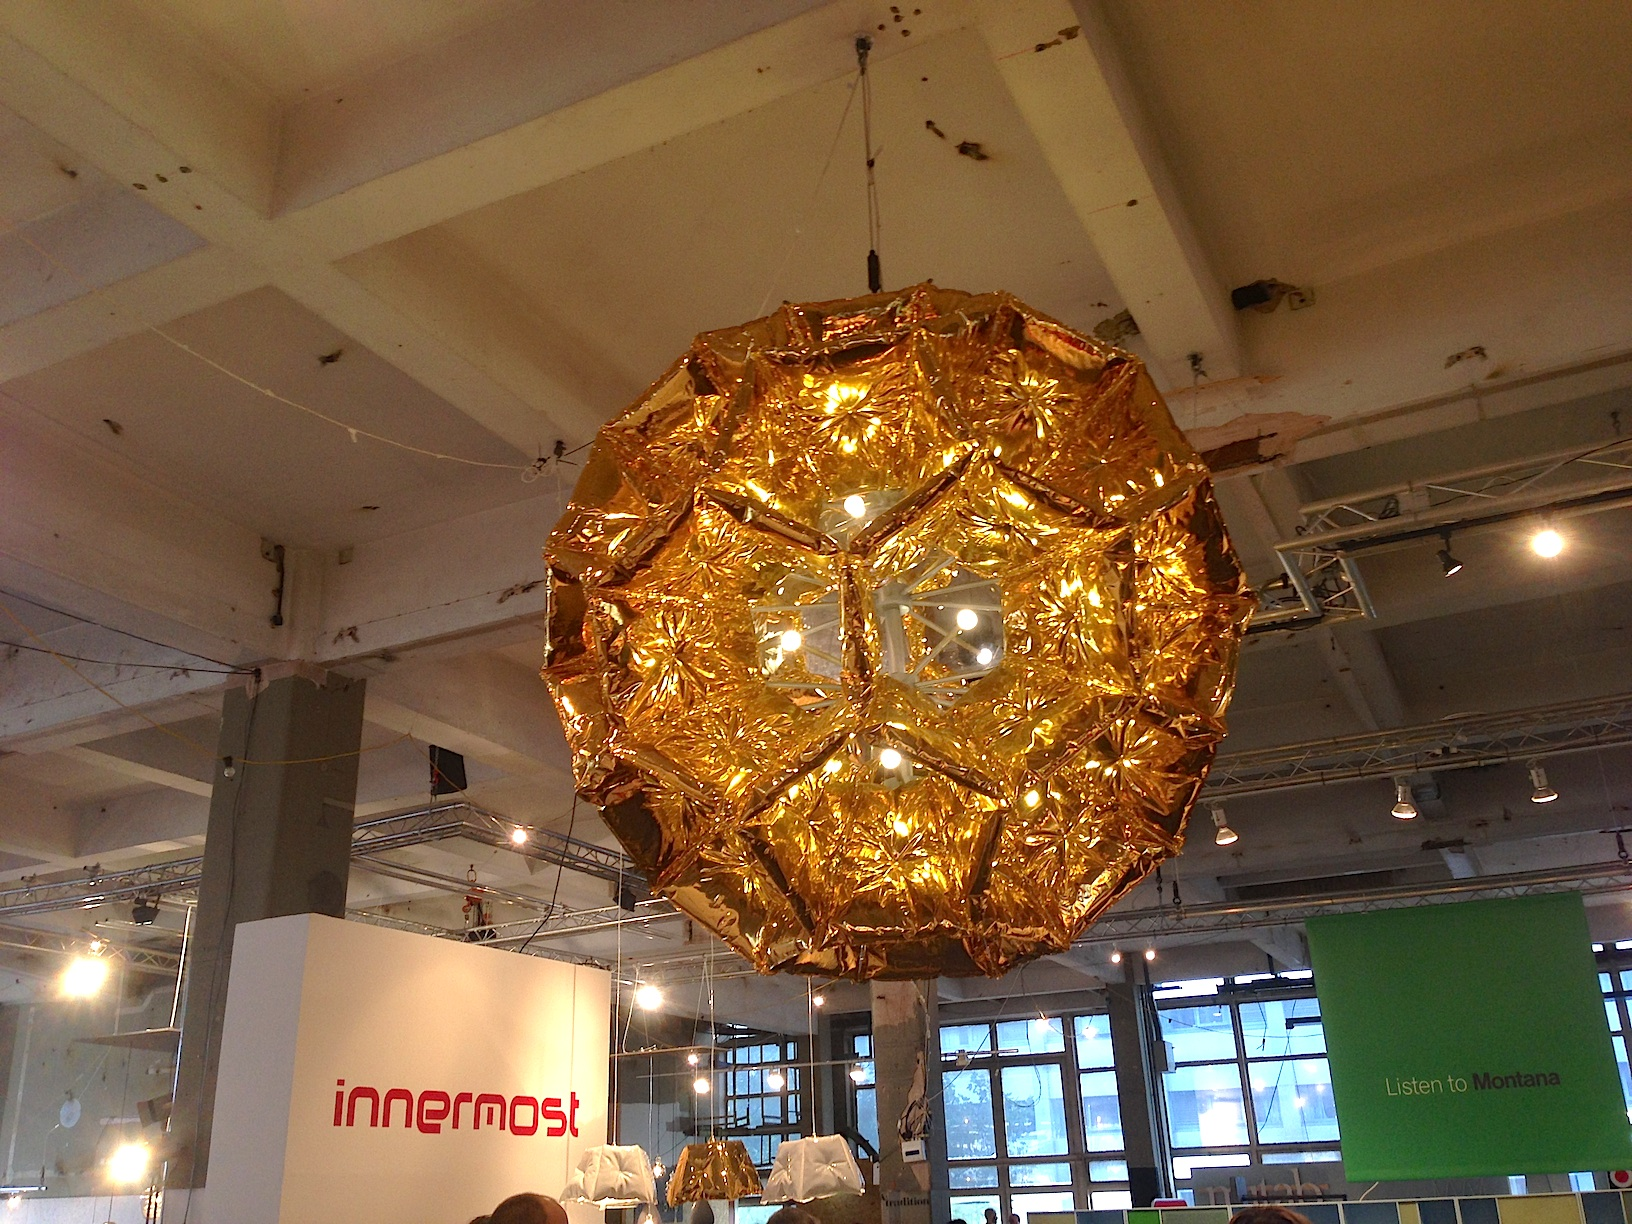 Design Junction London 2013 - innermost